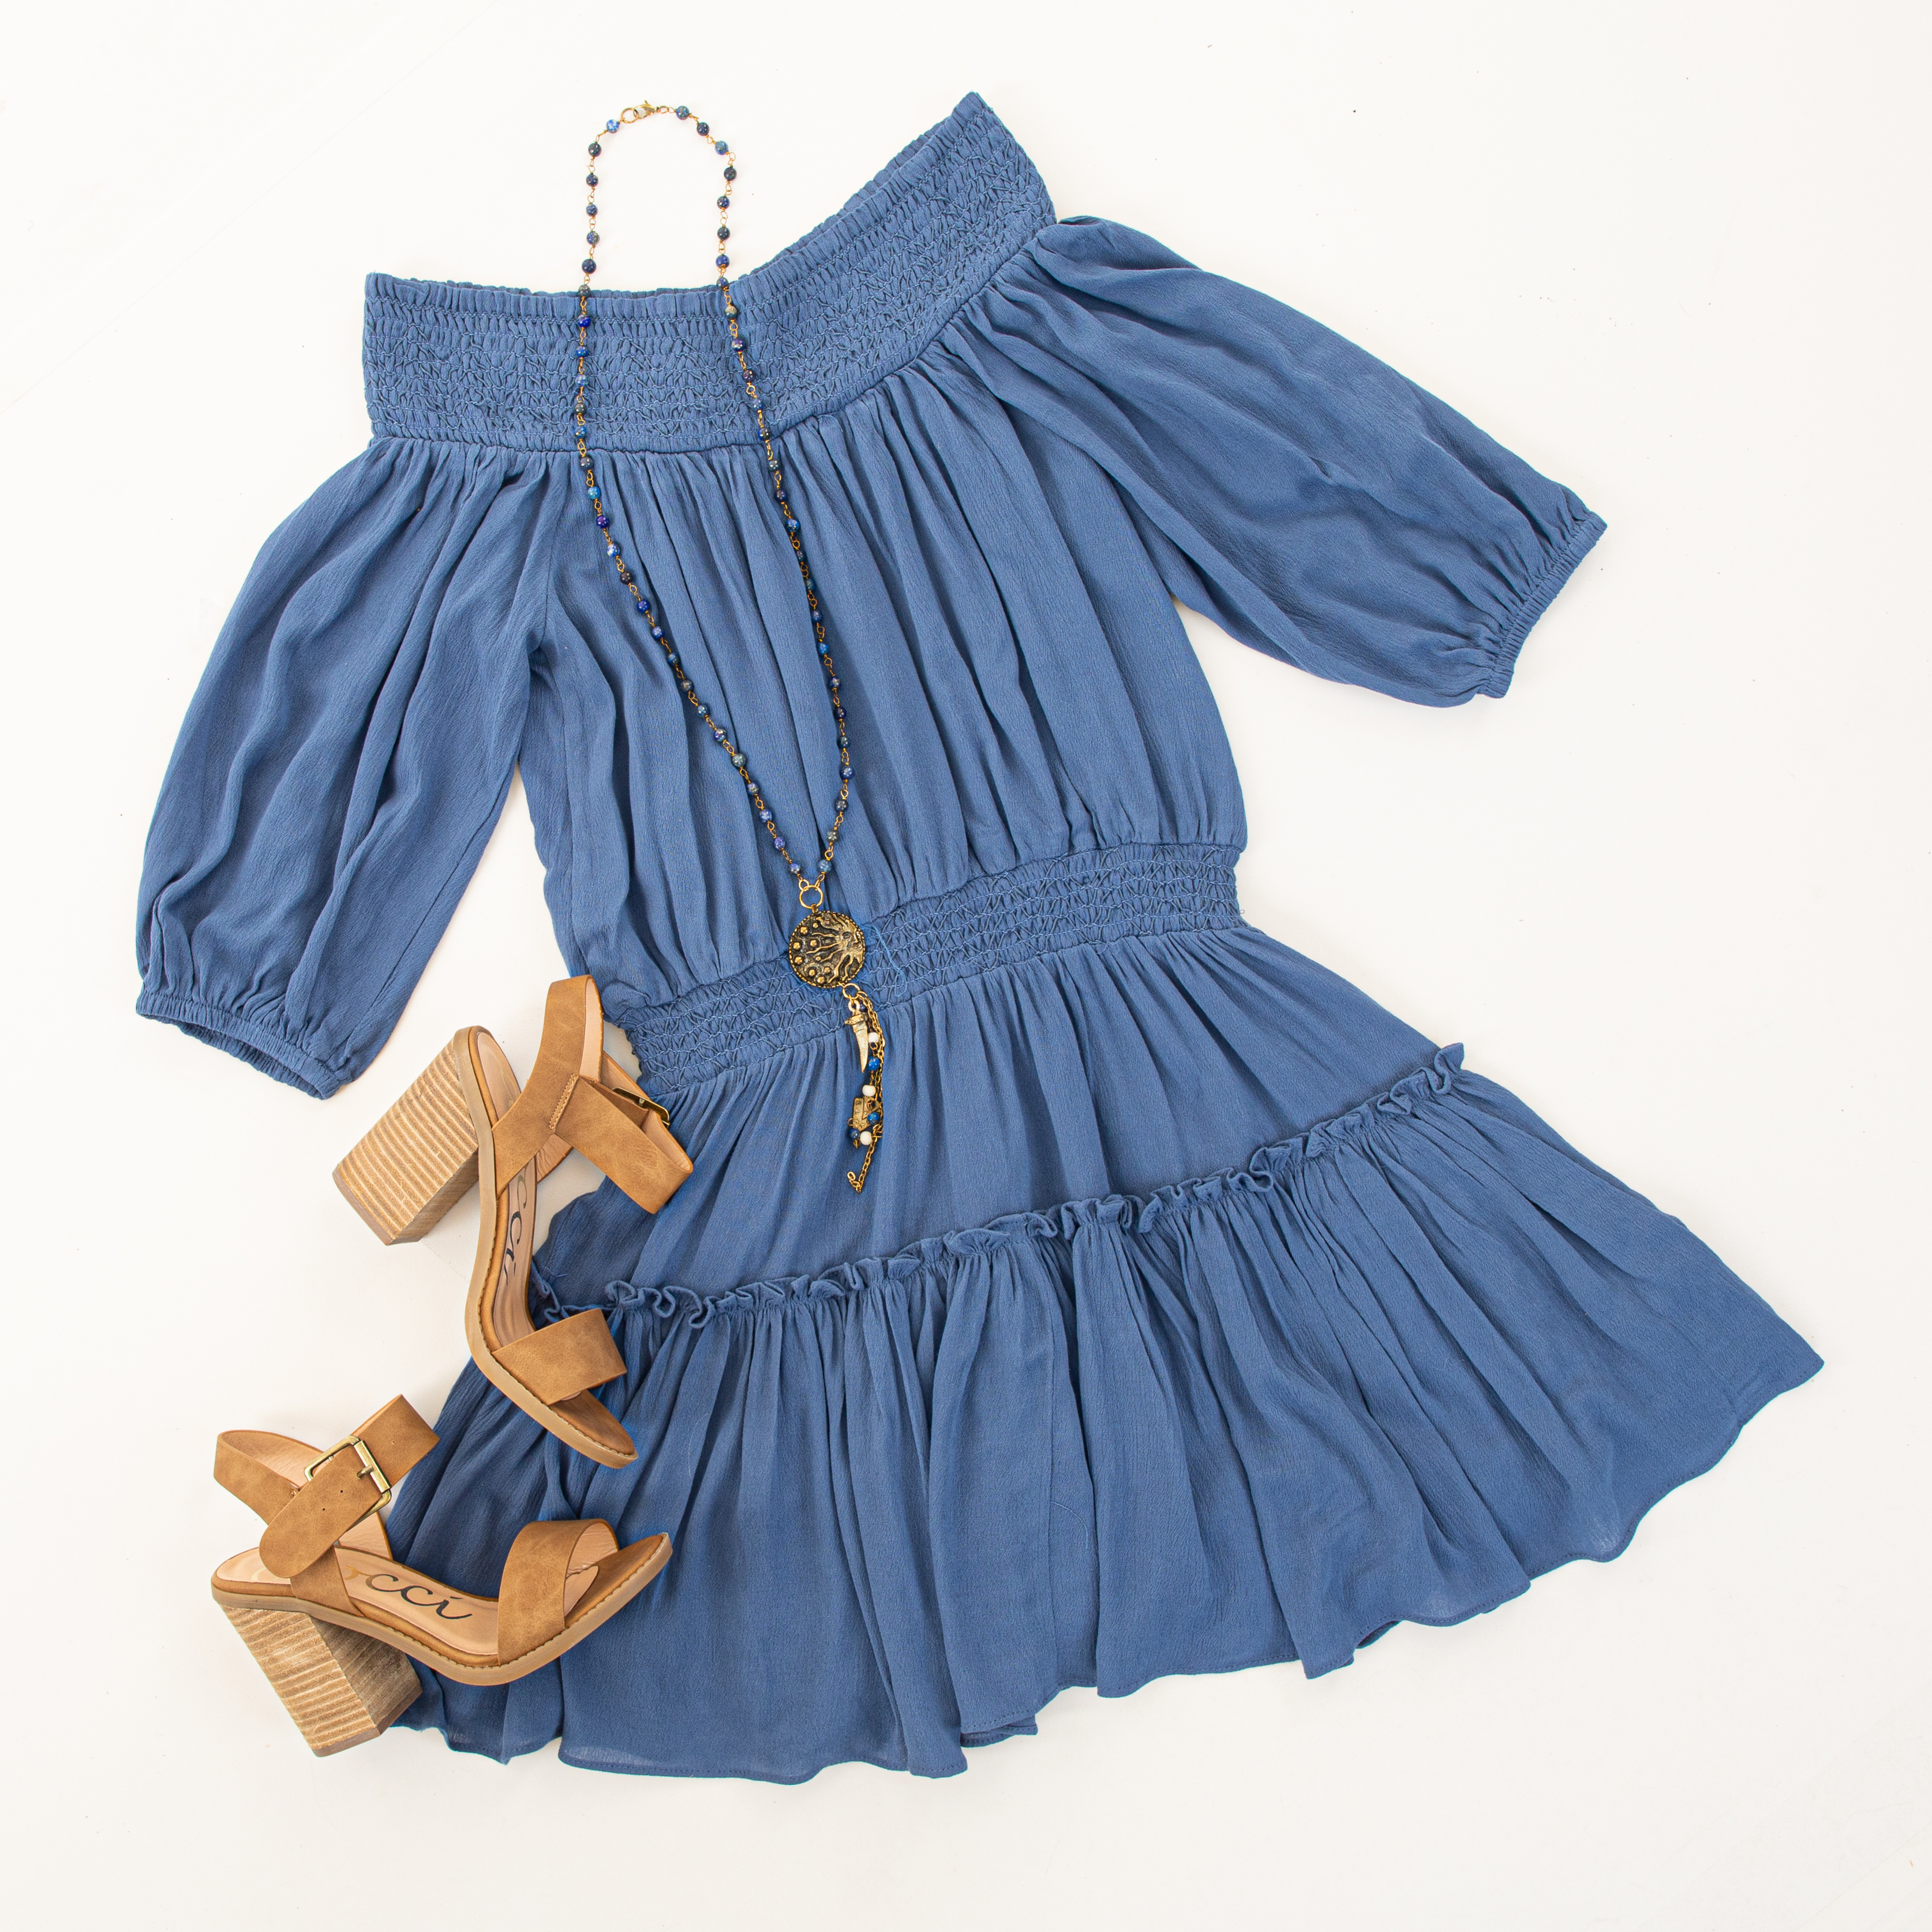 Dusty Blue Off Shoulder Mini Dress with Short Bubble Sleeves